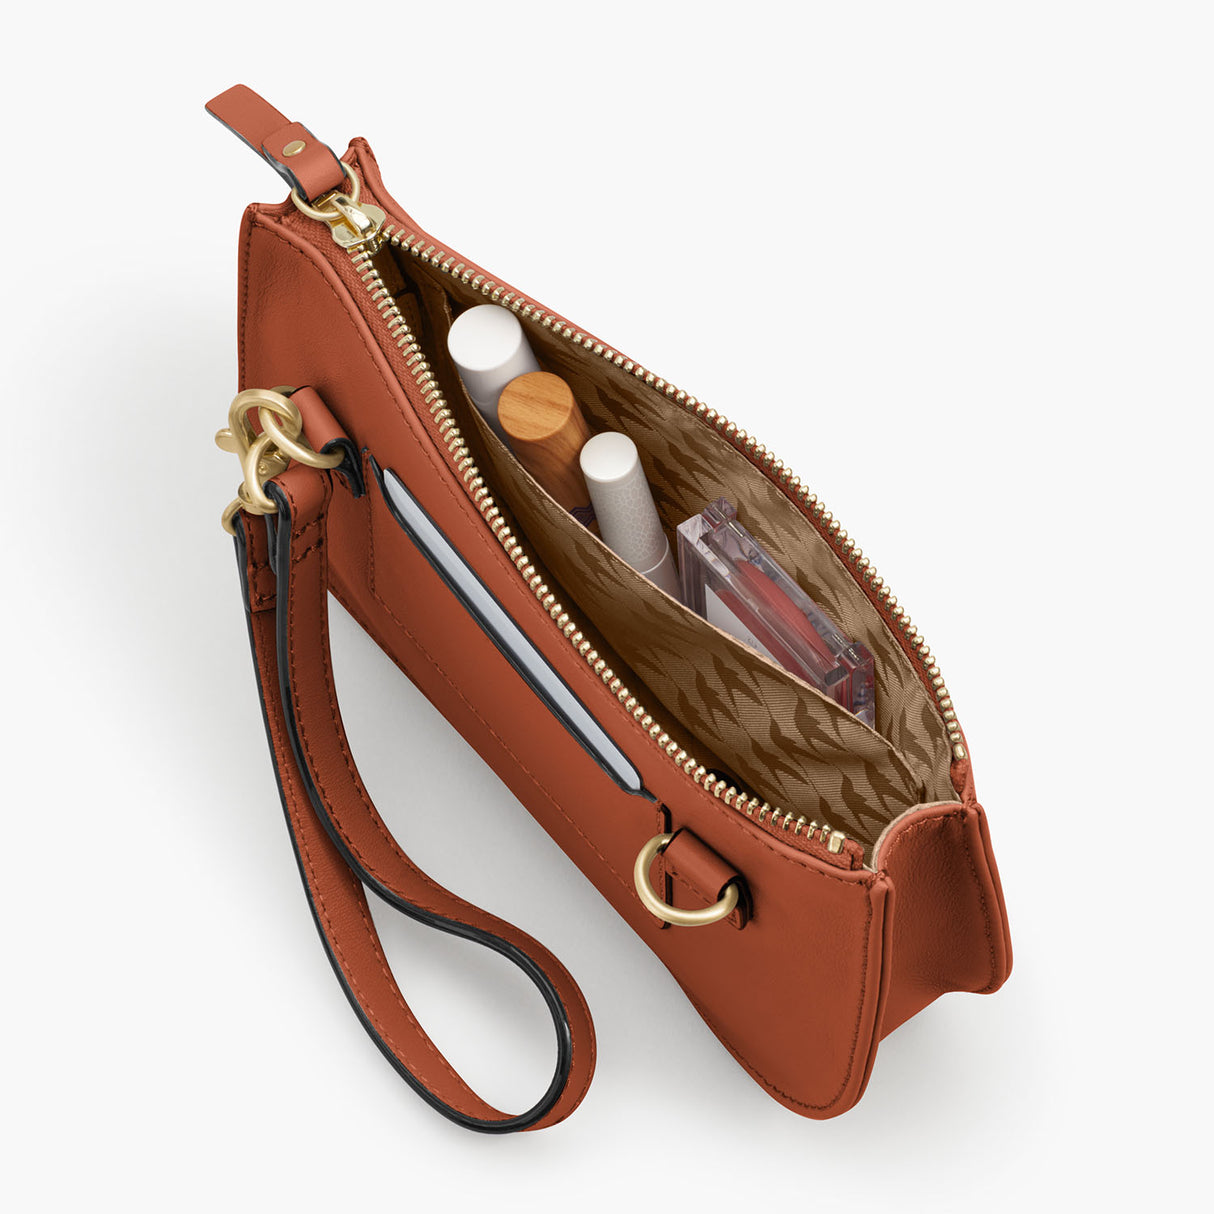 Interior Pocket - The Waverley 2 - Nappa Leather - Sienna / Gold / Camel - Crossbody - Lo & Sons